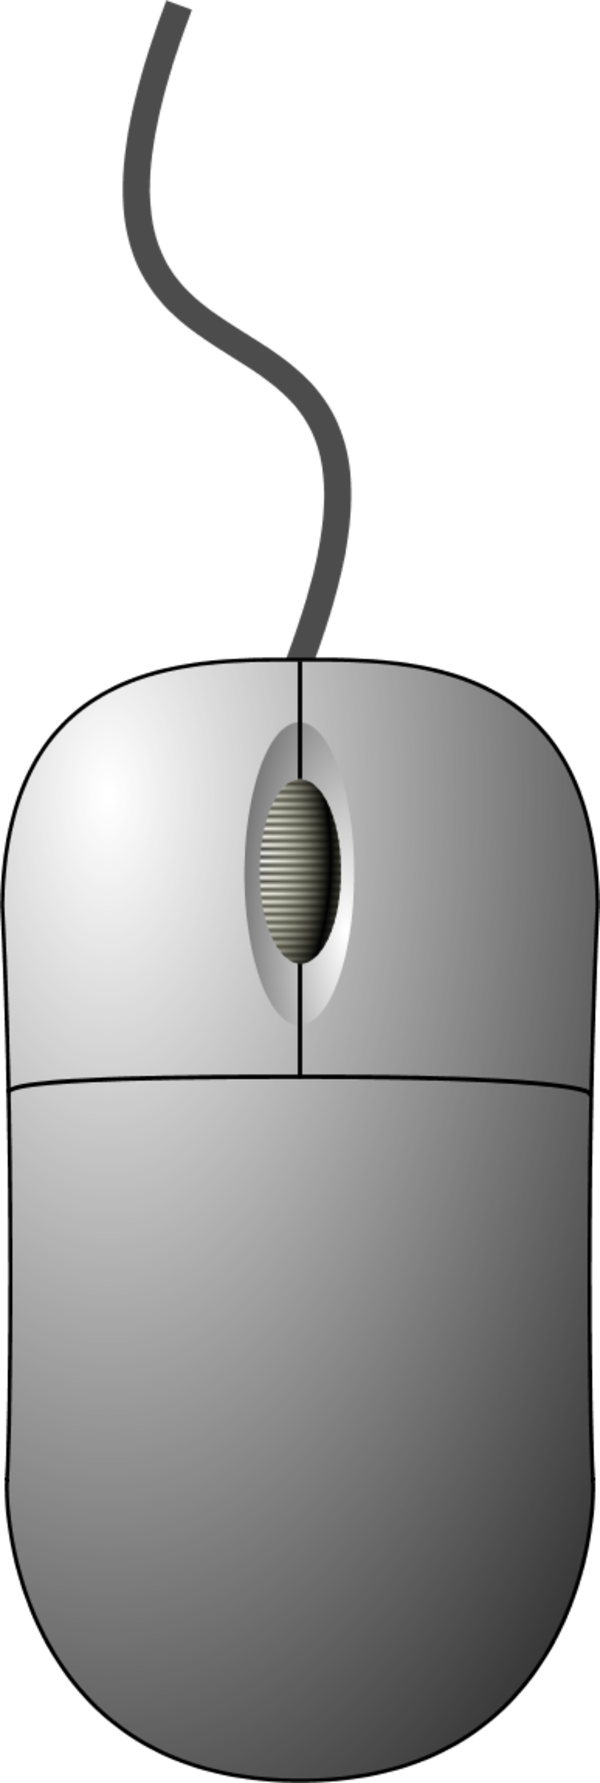 Computer Mouse Top Down View   Vector Clip Art